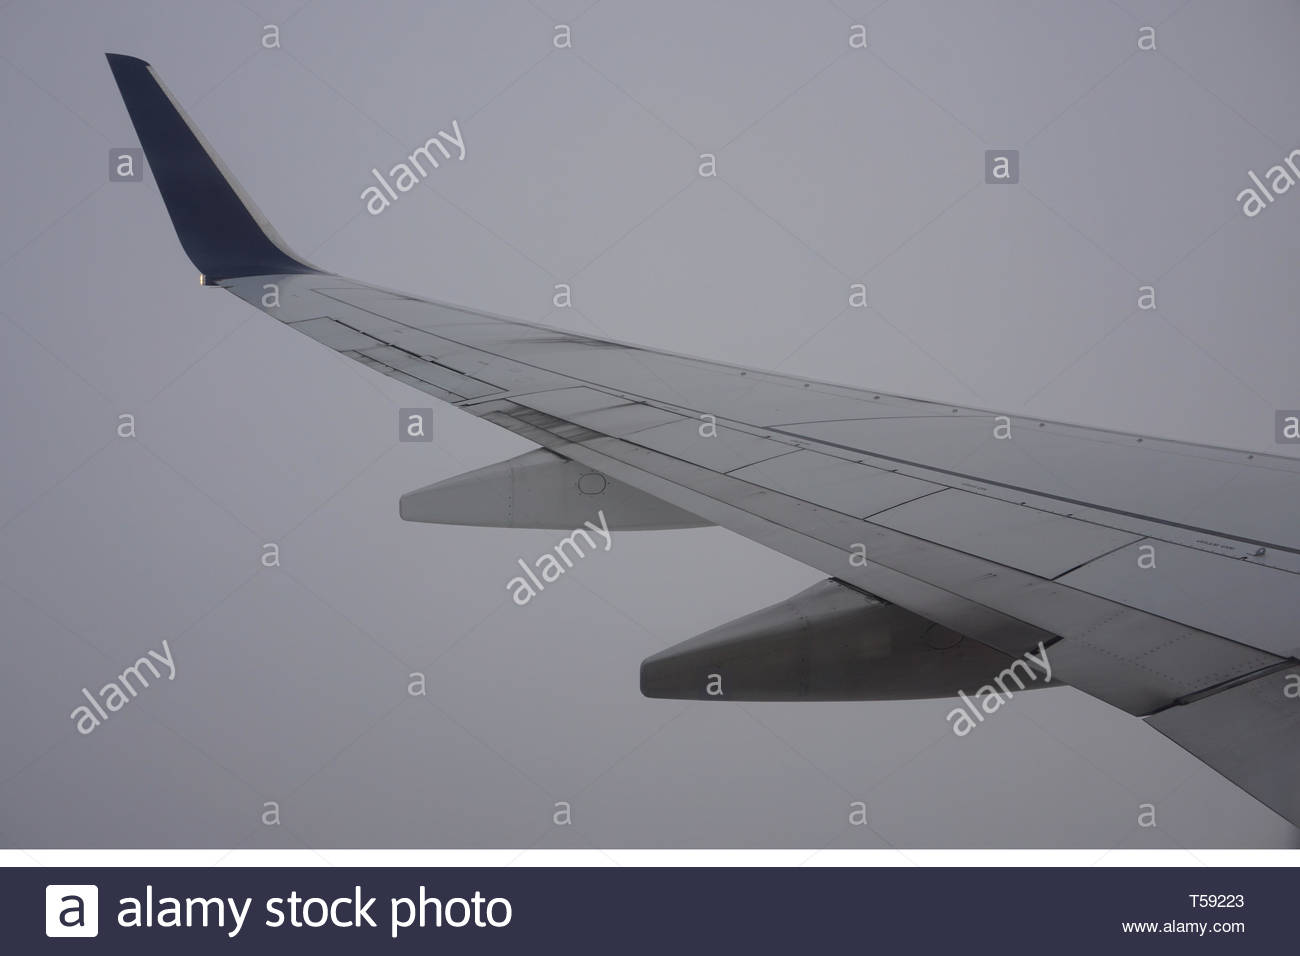 Delta airplane wing from airplane window. - Stock Image